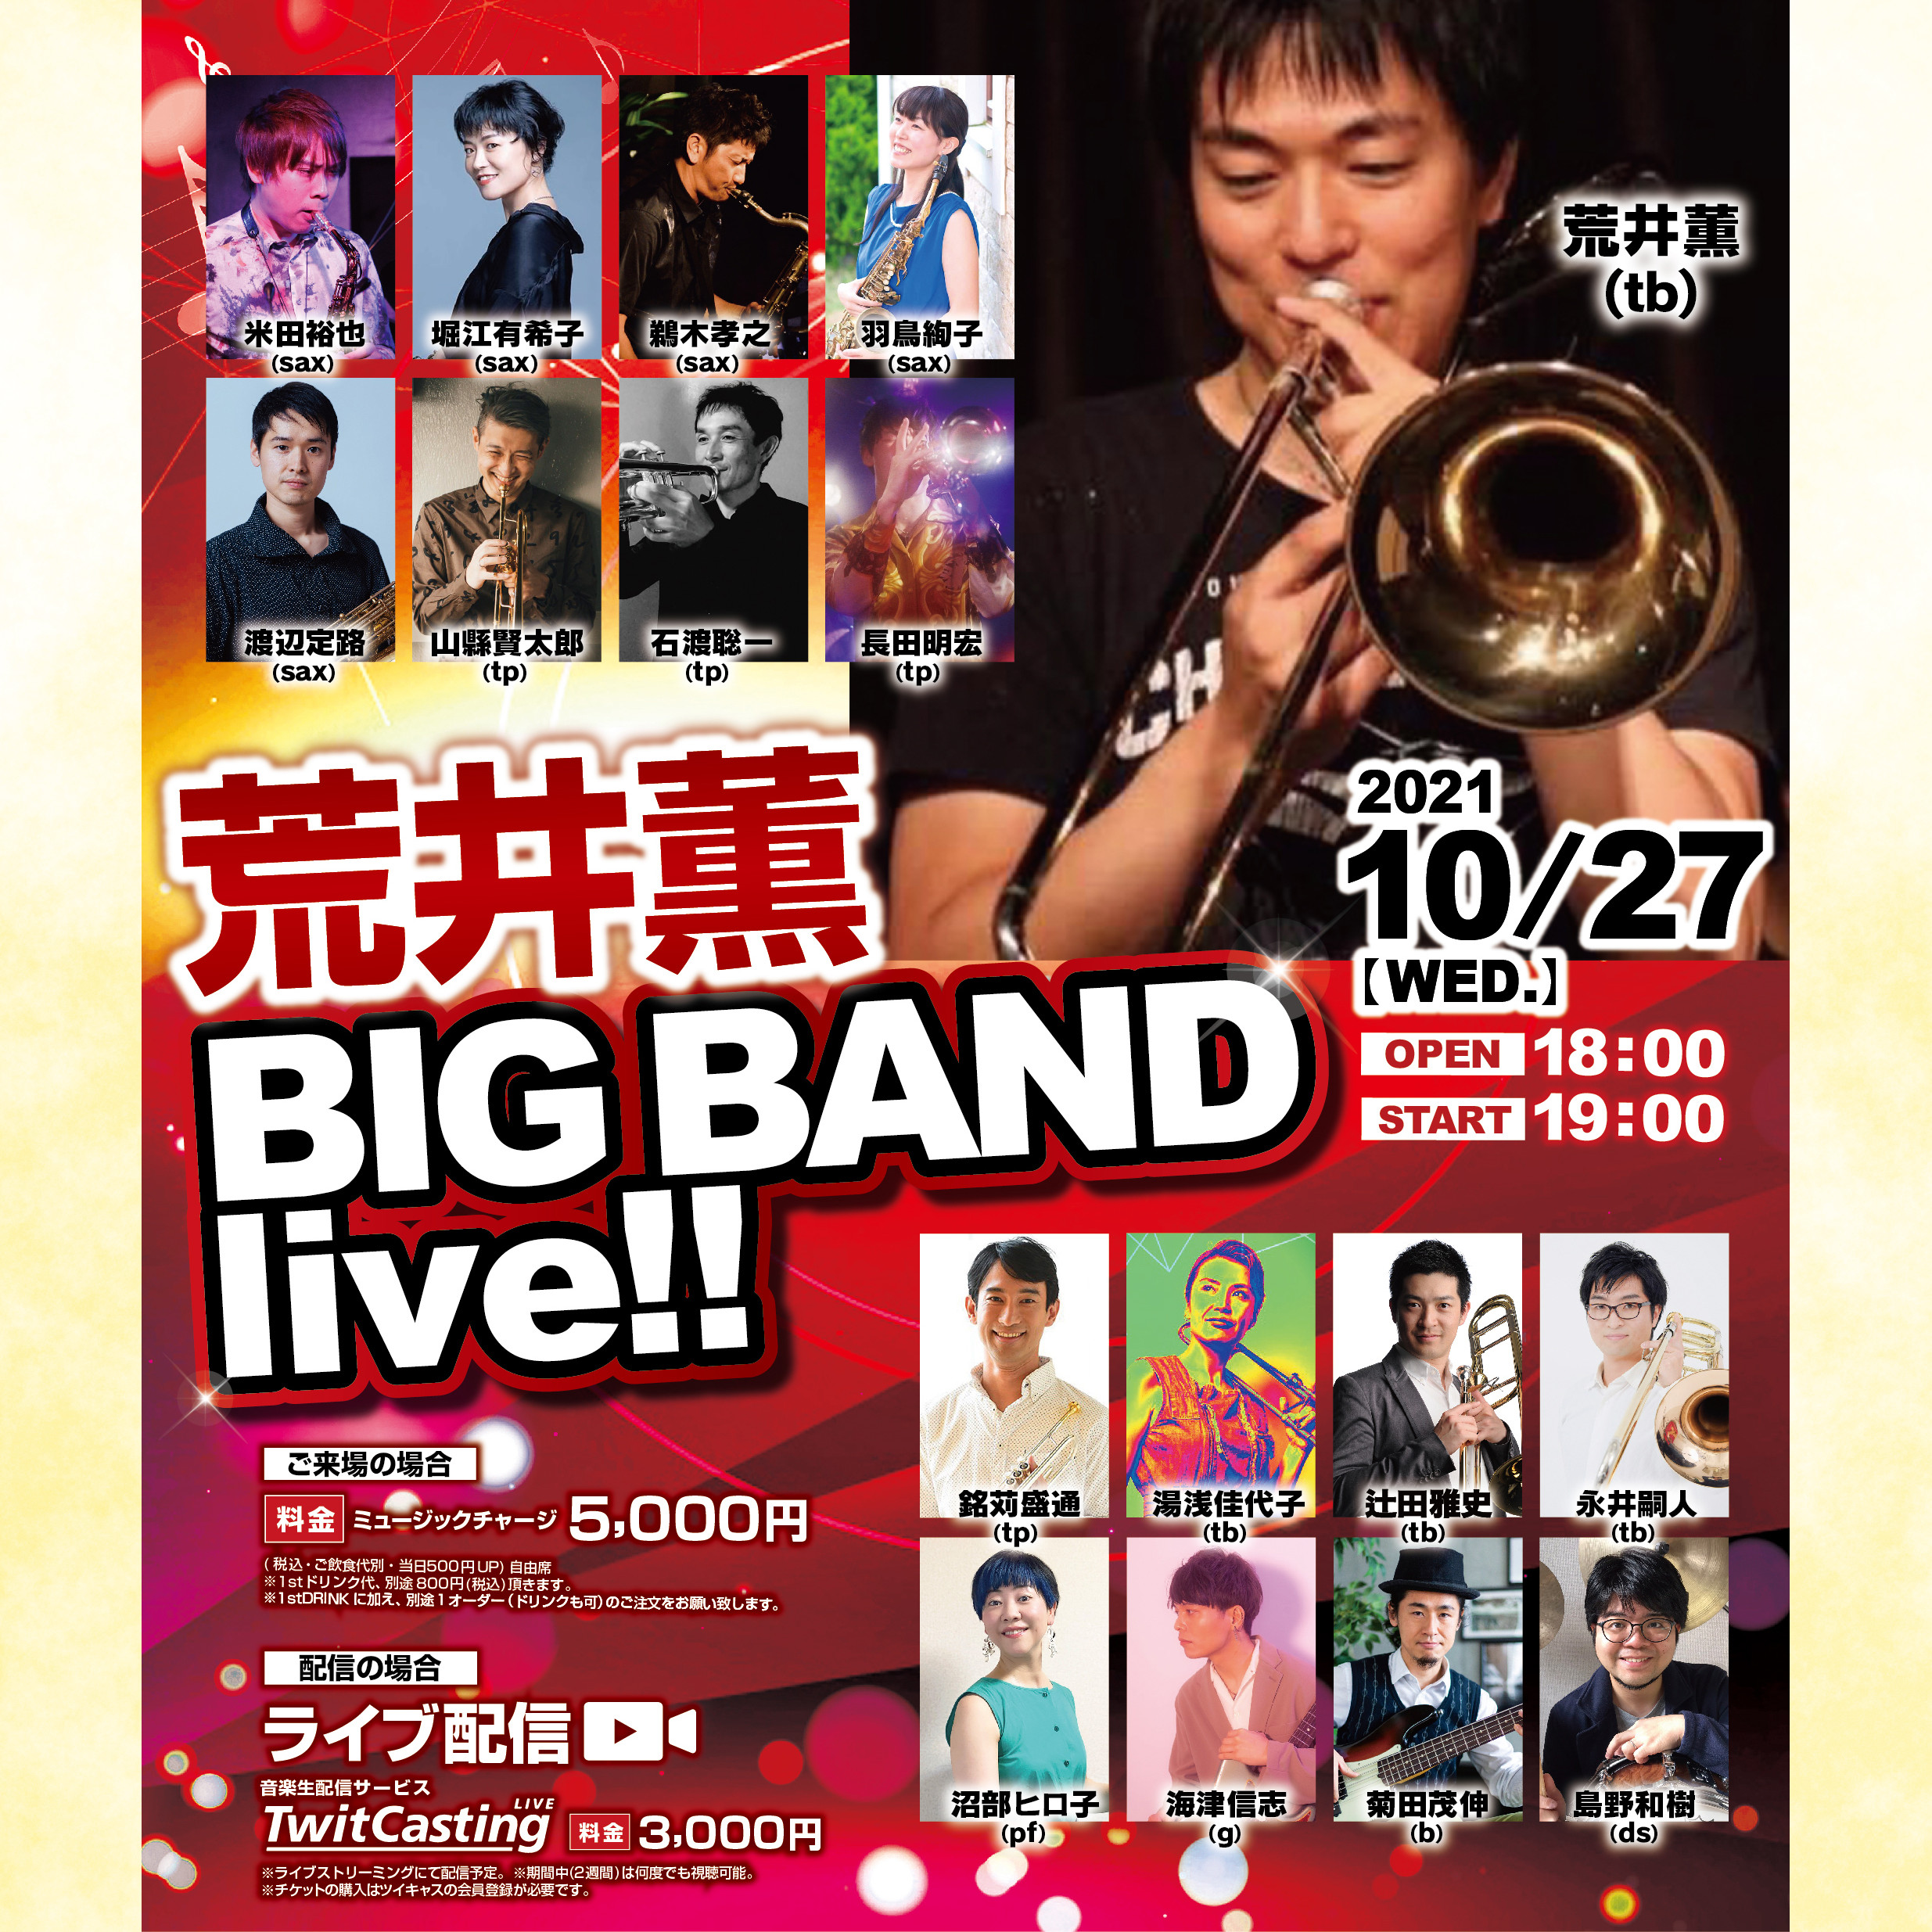 【SOLD OUT!!】荒井薫 BIG BAND